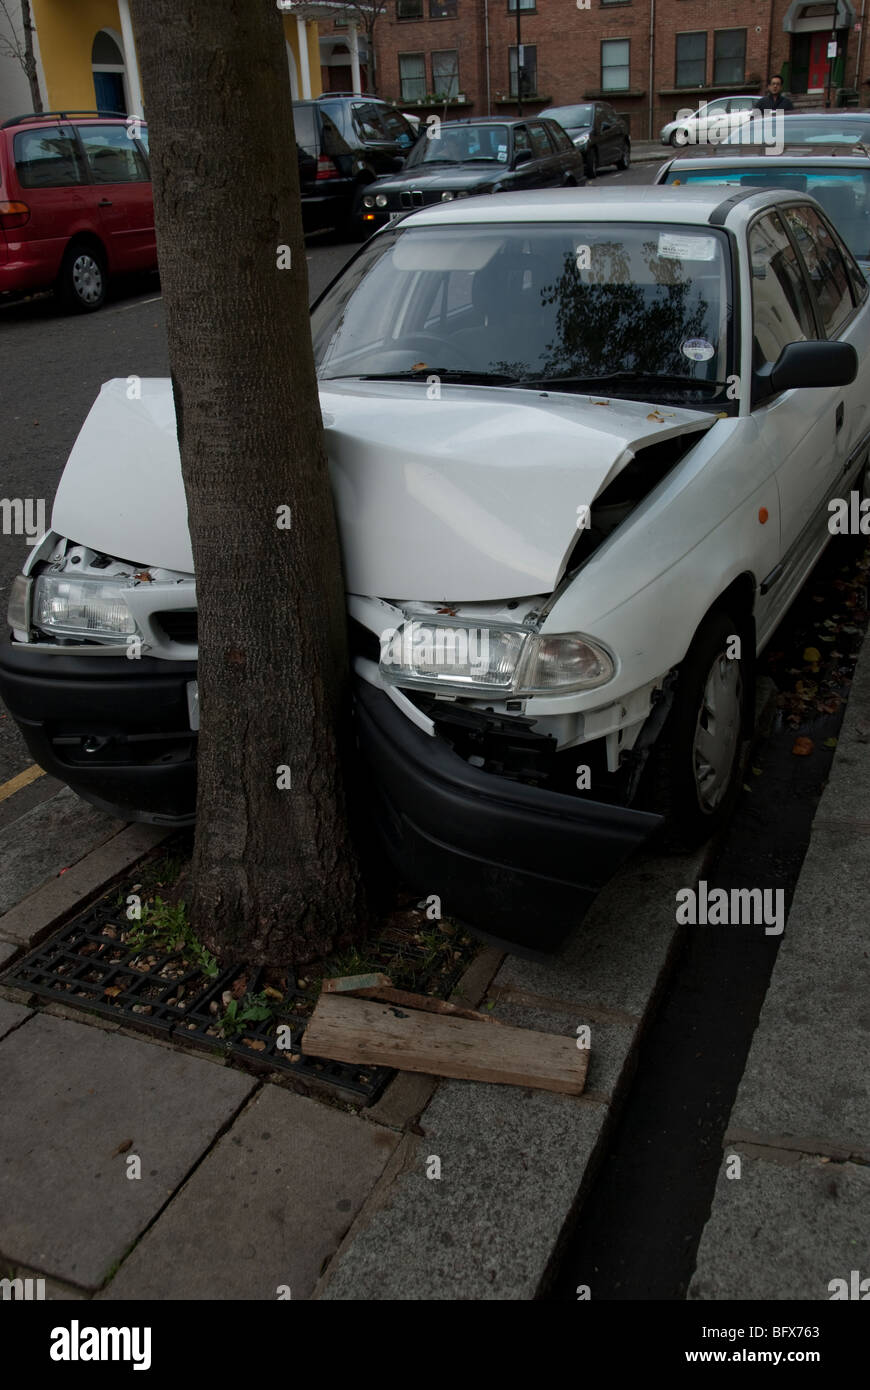 parked white car pushed around tree by another car - Stock Image